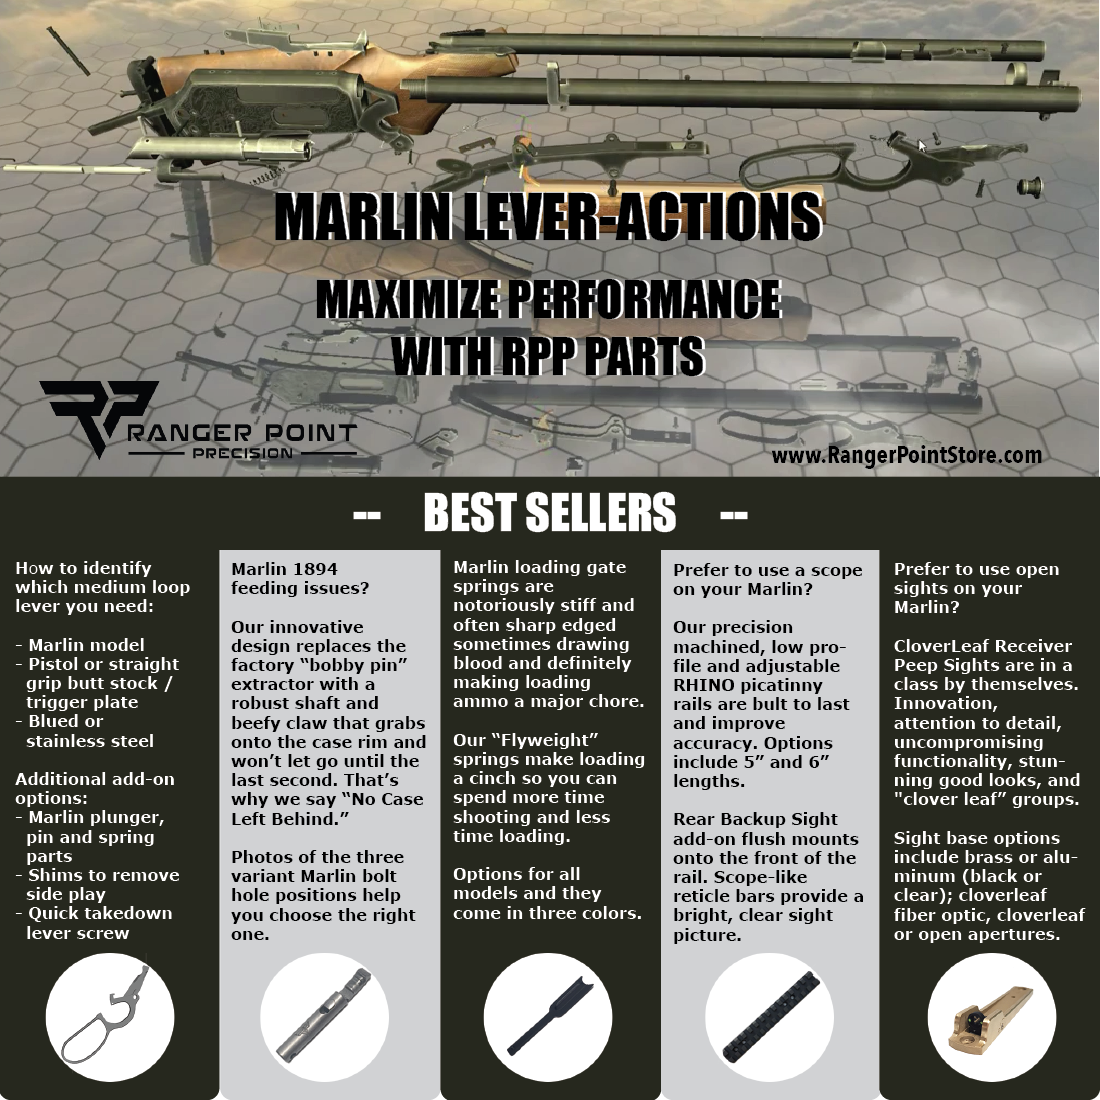 ranger-point-marlin-parts-336-308-338-444-1895-450m-1894-infographic-final-01.png